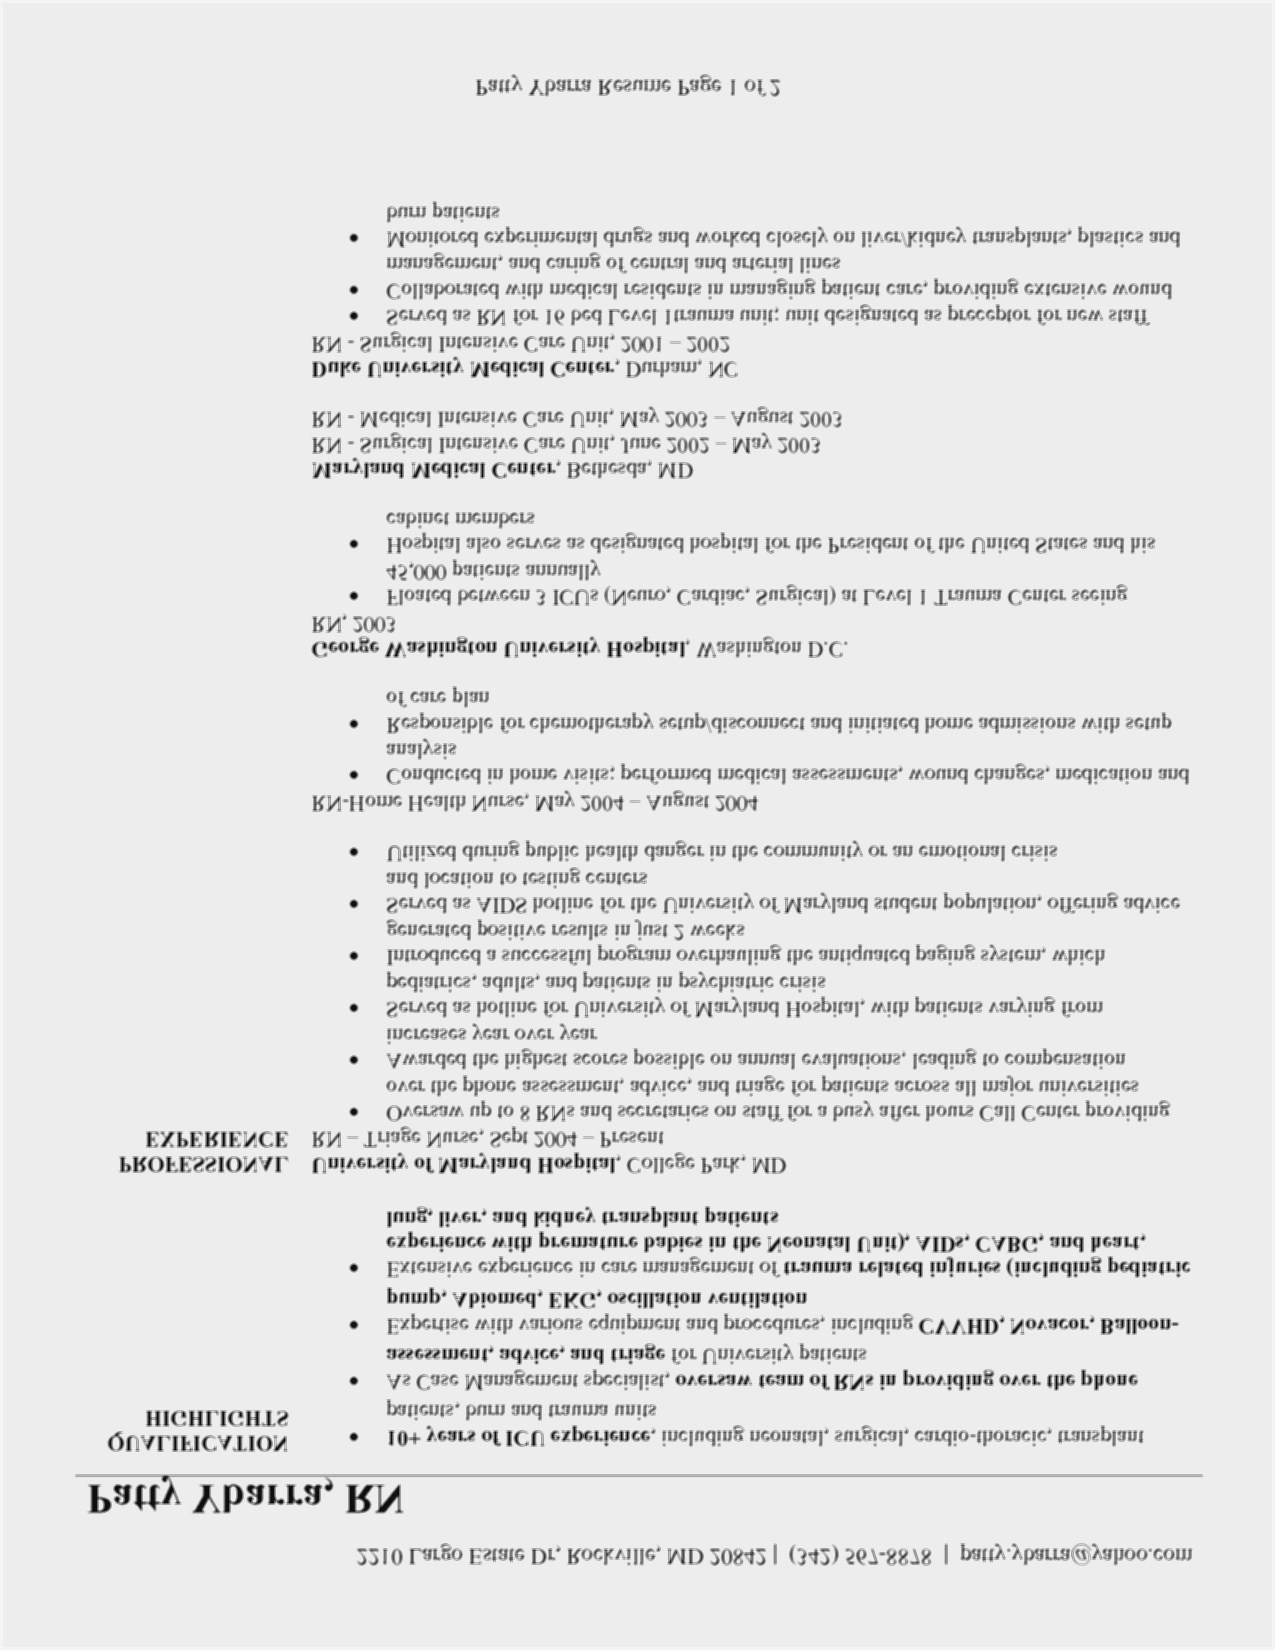 Free Nursing Resume Templates Download